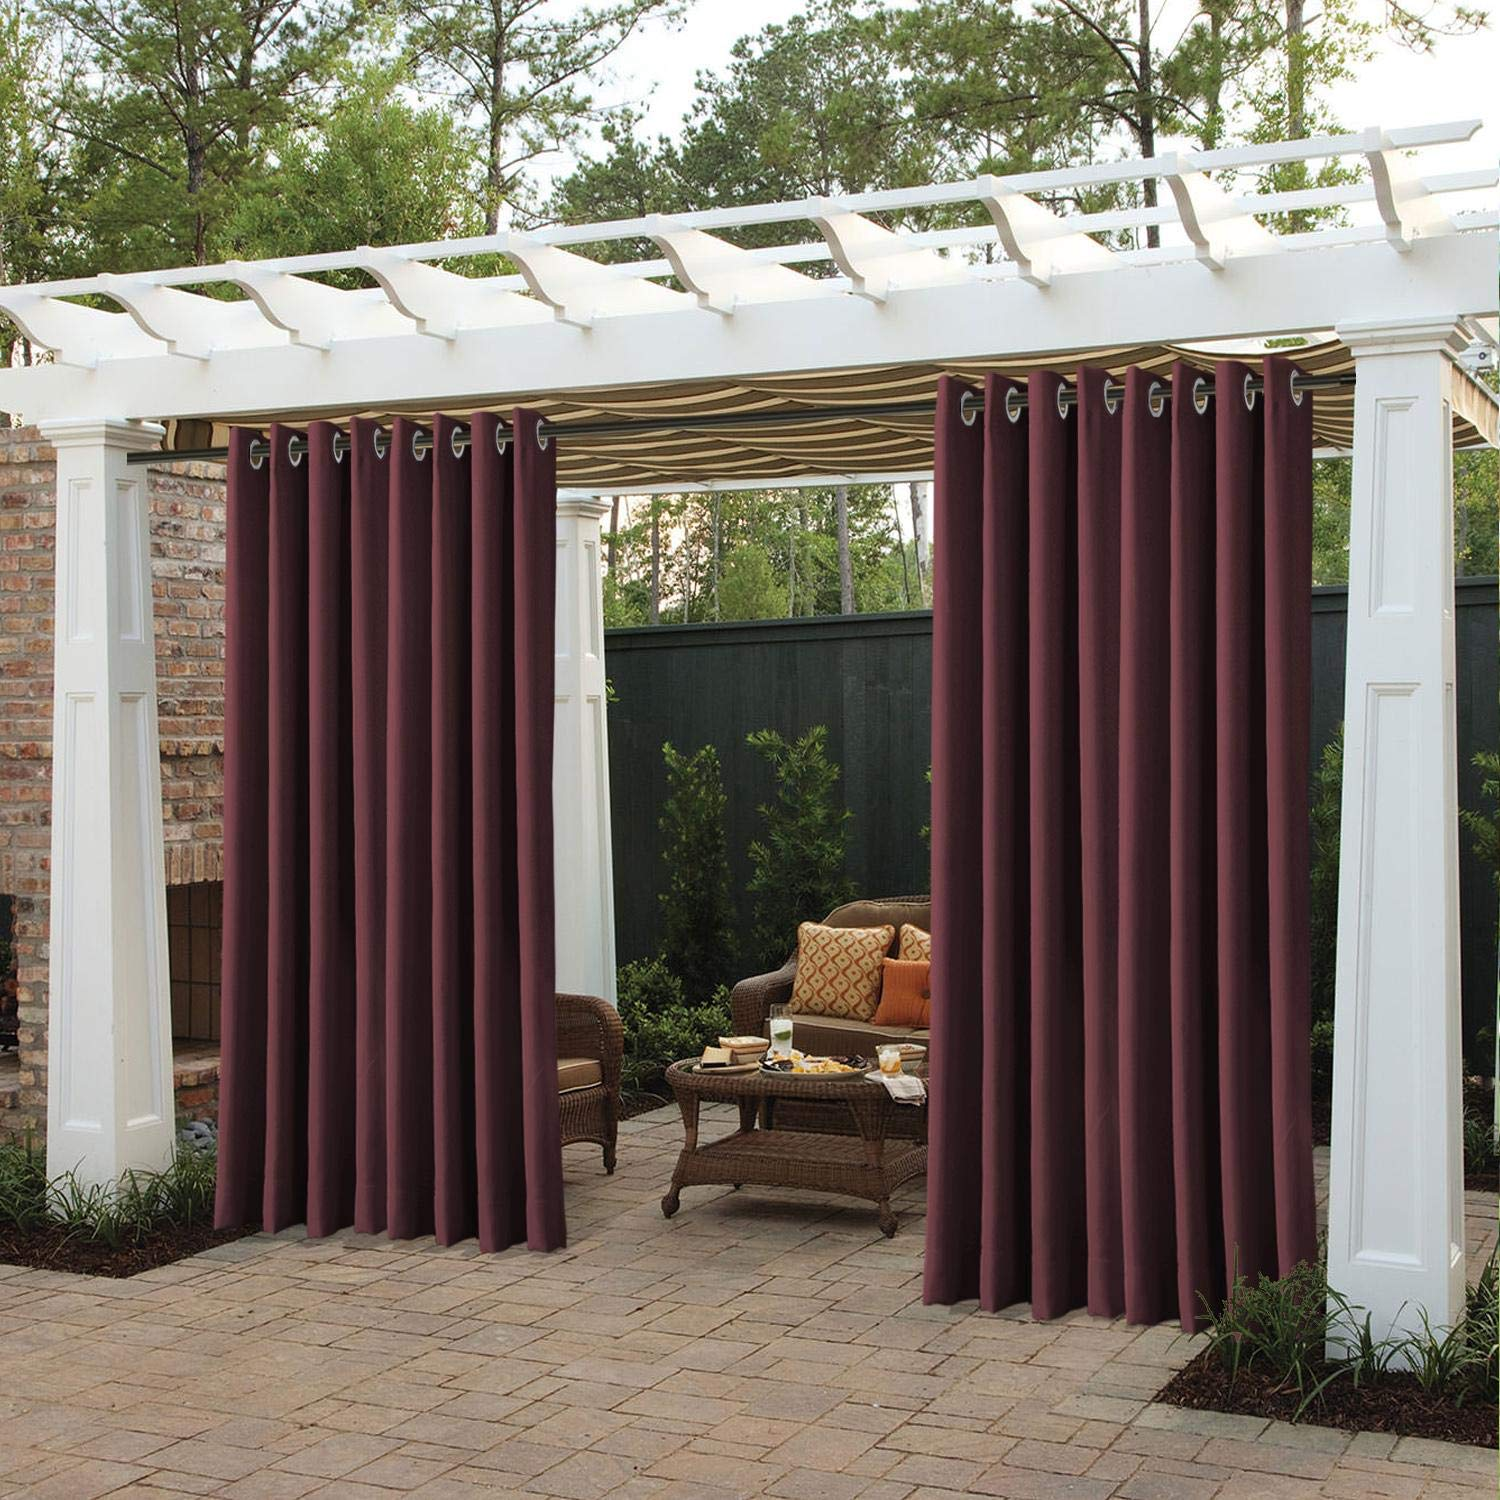 cololeaf Outdoor Curtains for Patio Extra Wide Waterproof Curtain Panels for Porch, Gazebo, Pergola, Cabana, Dock, Beach Home - Grommet - Burgundy 150'' Wx96 L Inch (1 Panel)